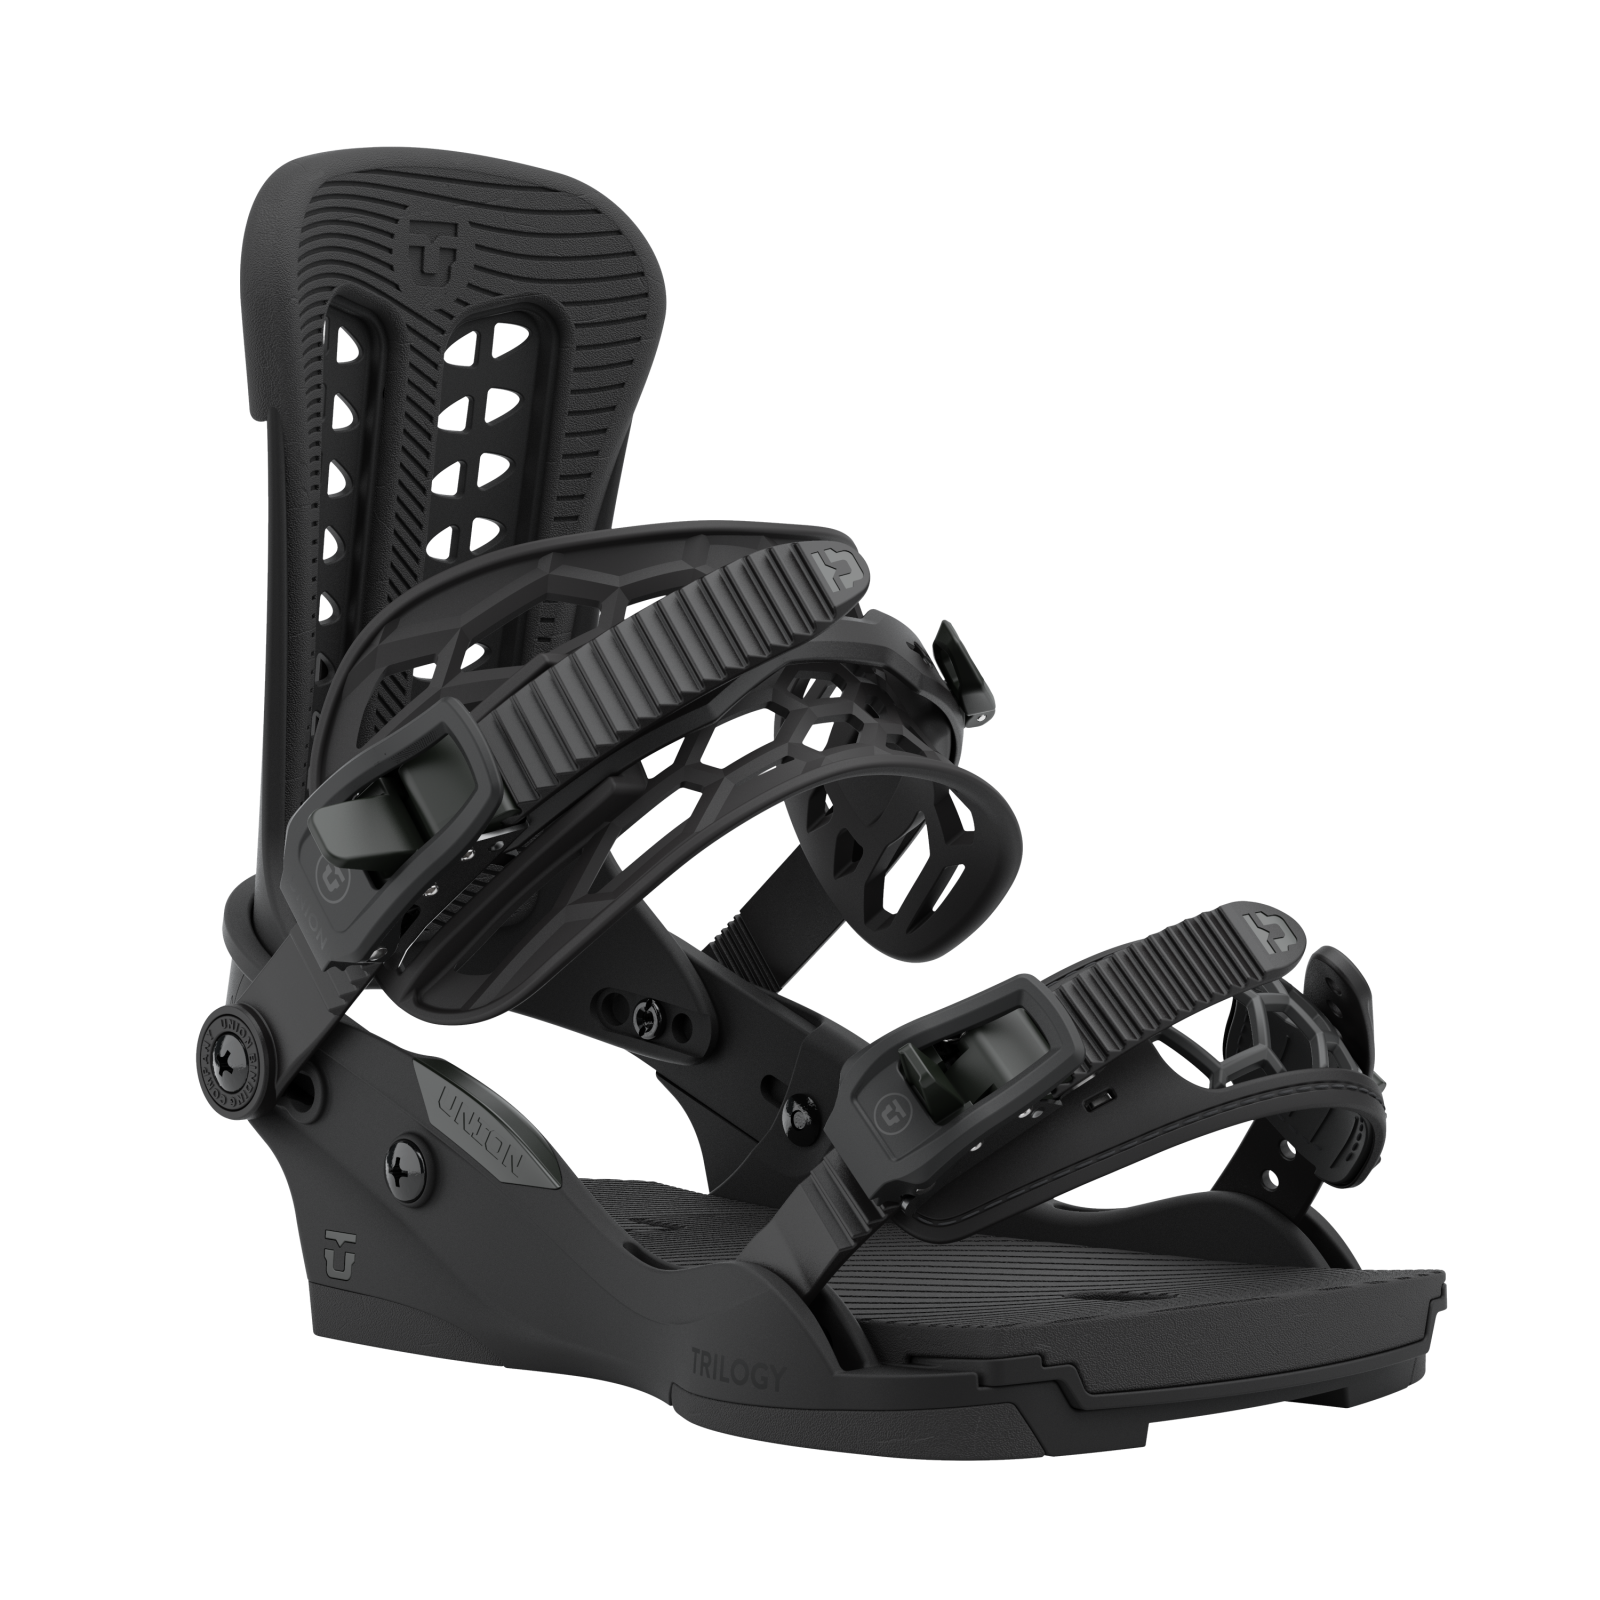 Union Trilogy Snowboard Binding (Multiple Color Options)